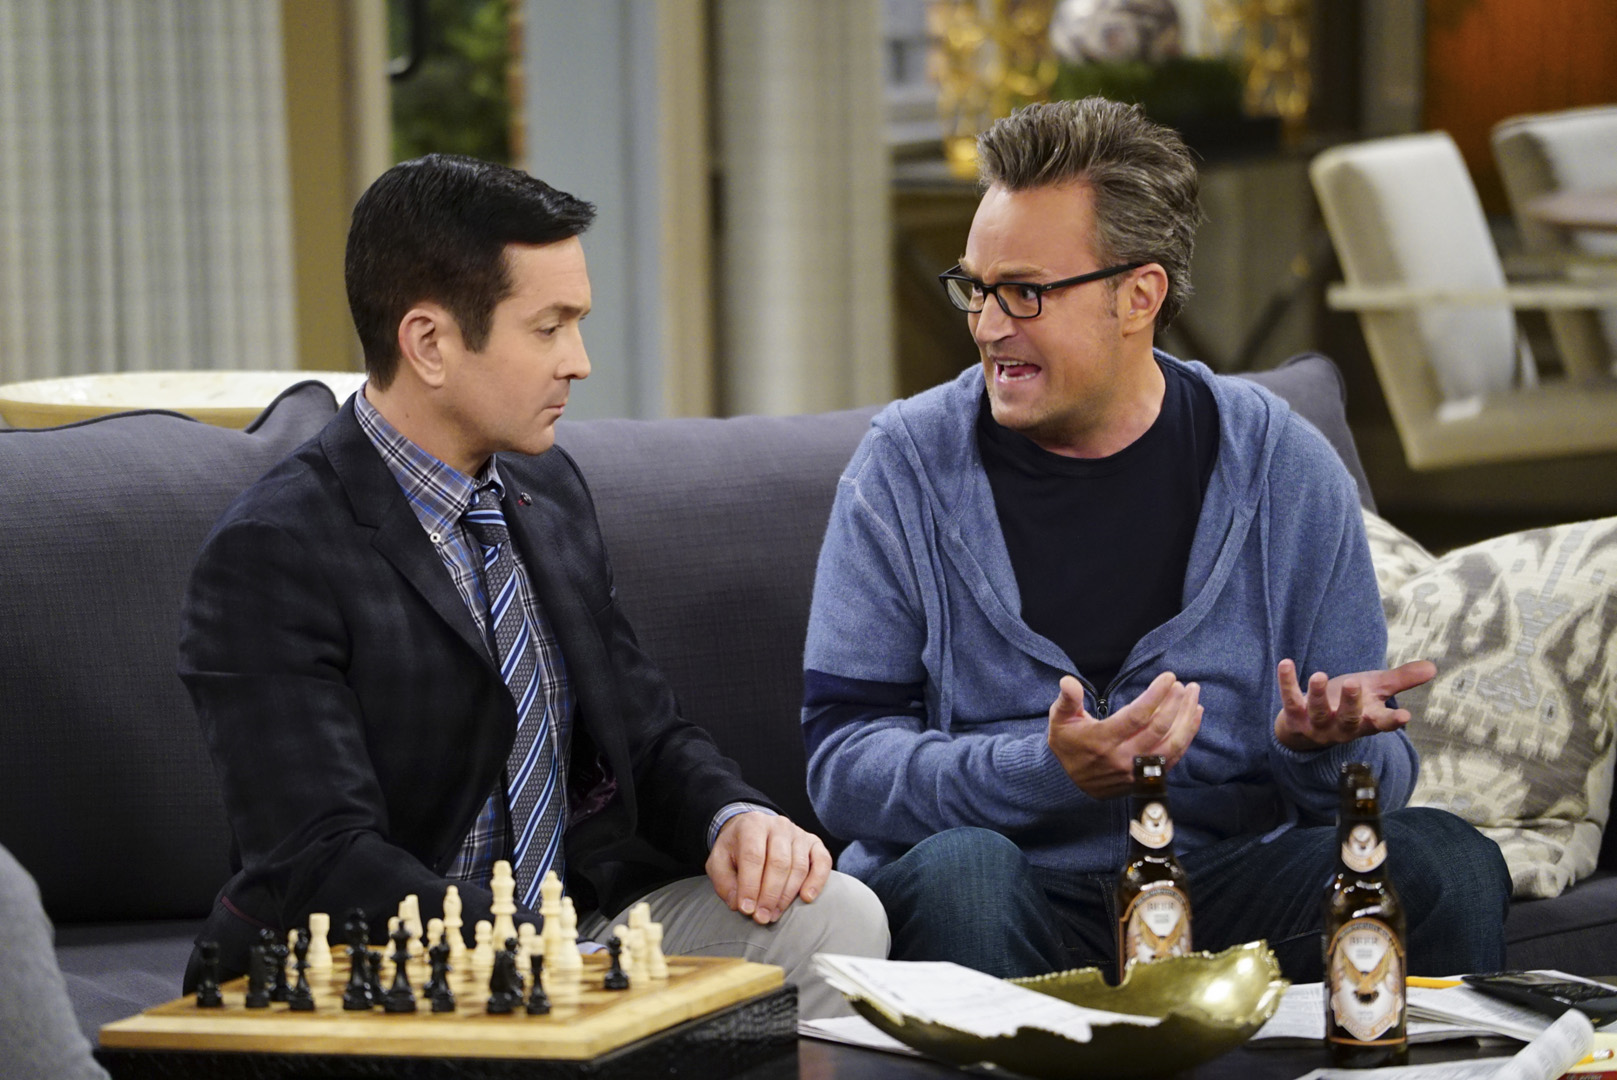 Oscar can't believe Felix was a nationally ranked chess player back in the day.